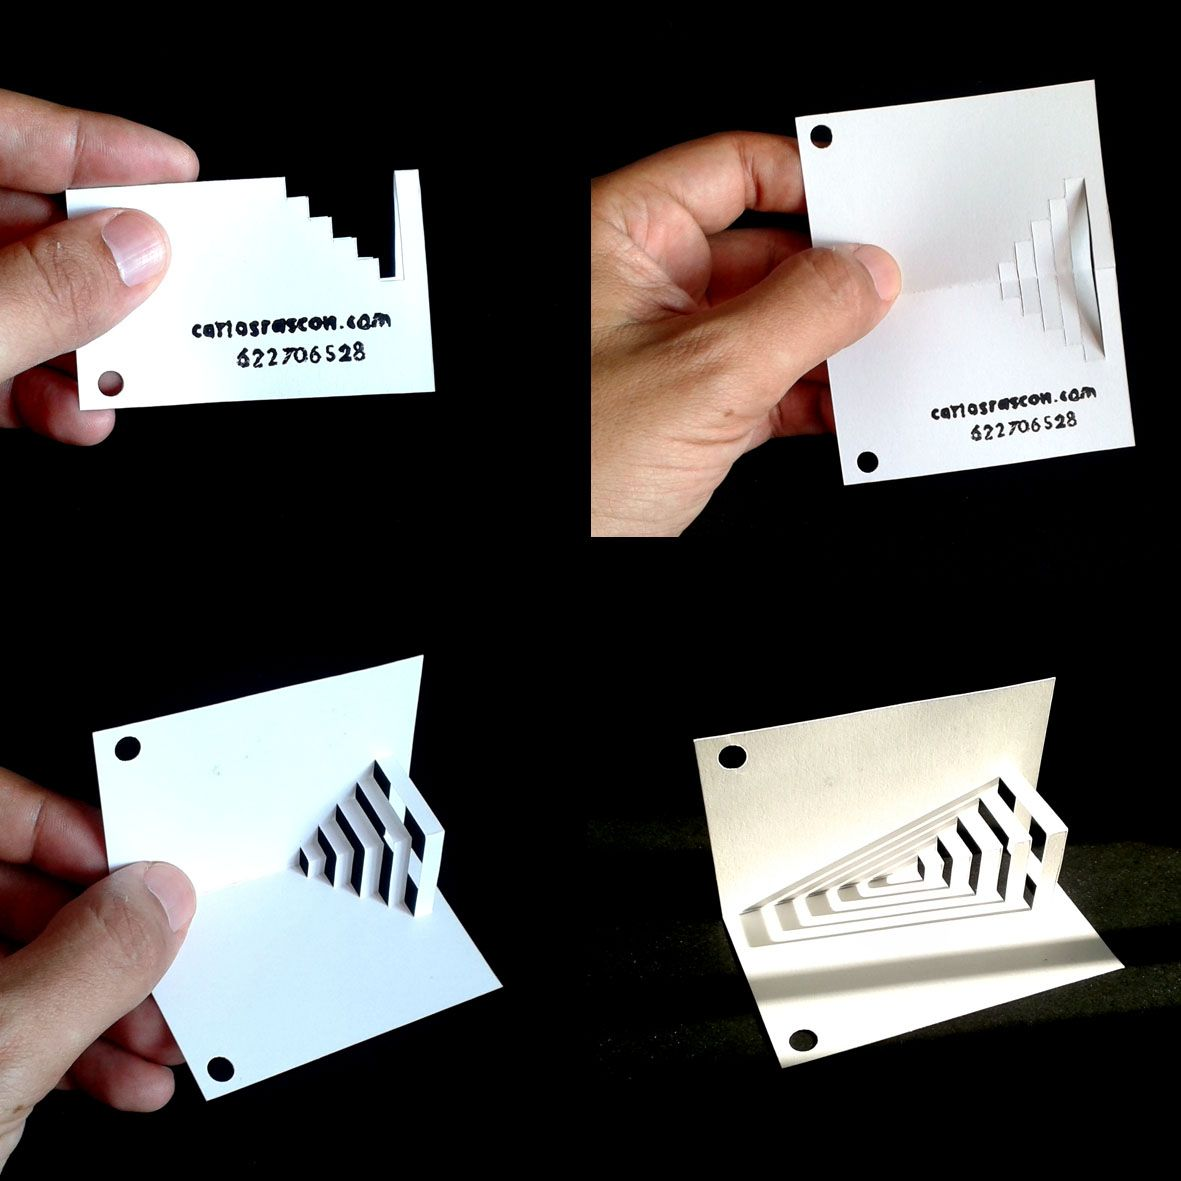 This is my new kirigami business card completely handmade this is my new kirigami business card completely handmade httpcarlosrascon cutout papercut papercutting origami kirigami jeuxipadfo Gallery